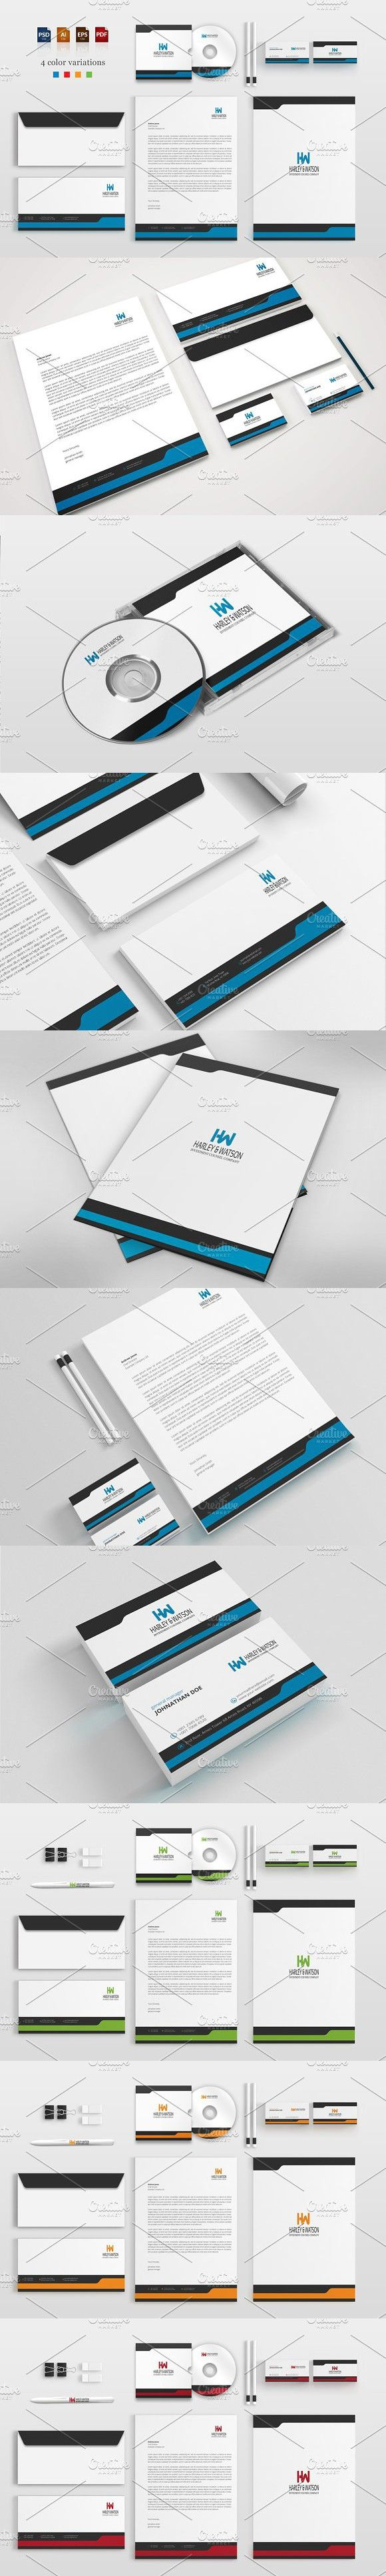 Corporate Stationery Pack. Stationery Templates